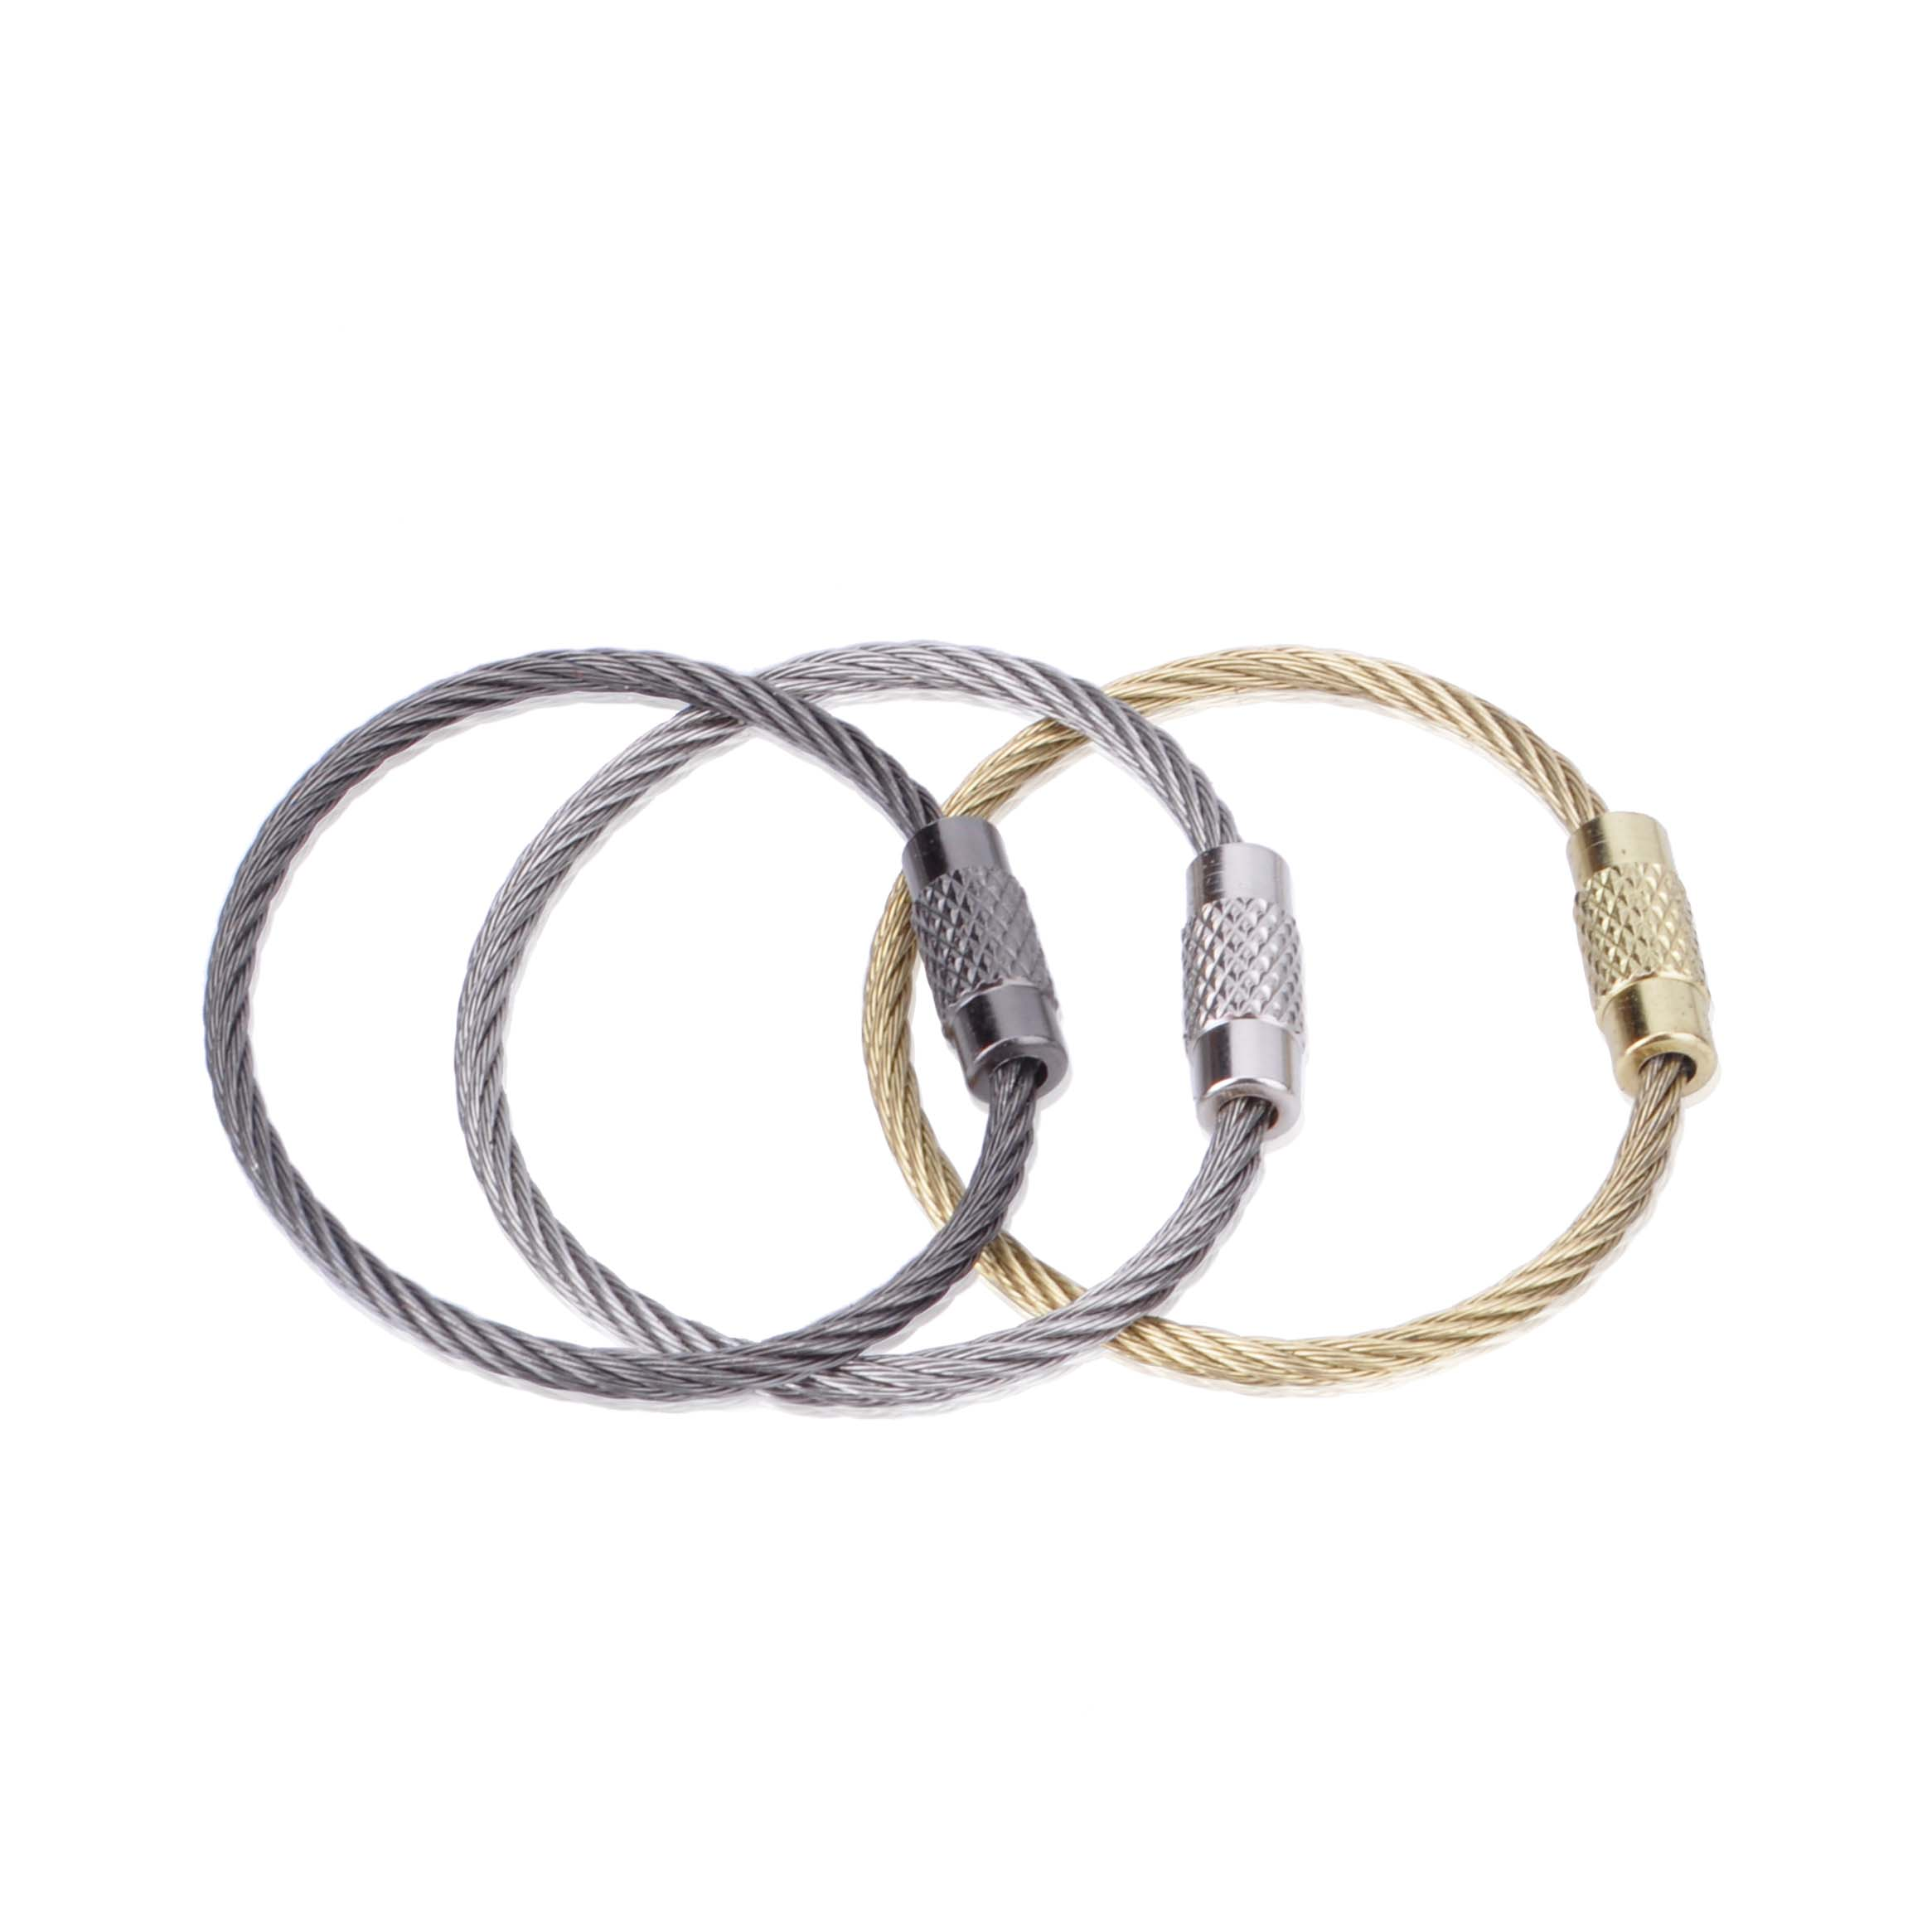 Stainless Steel Golden Black Wire Buckle Creative Keychain Key Practical Automotive Ts 10pc